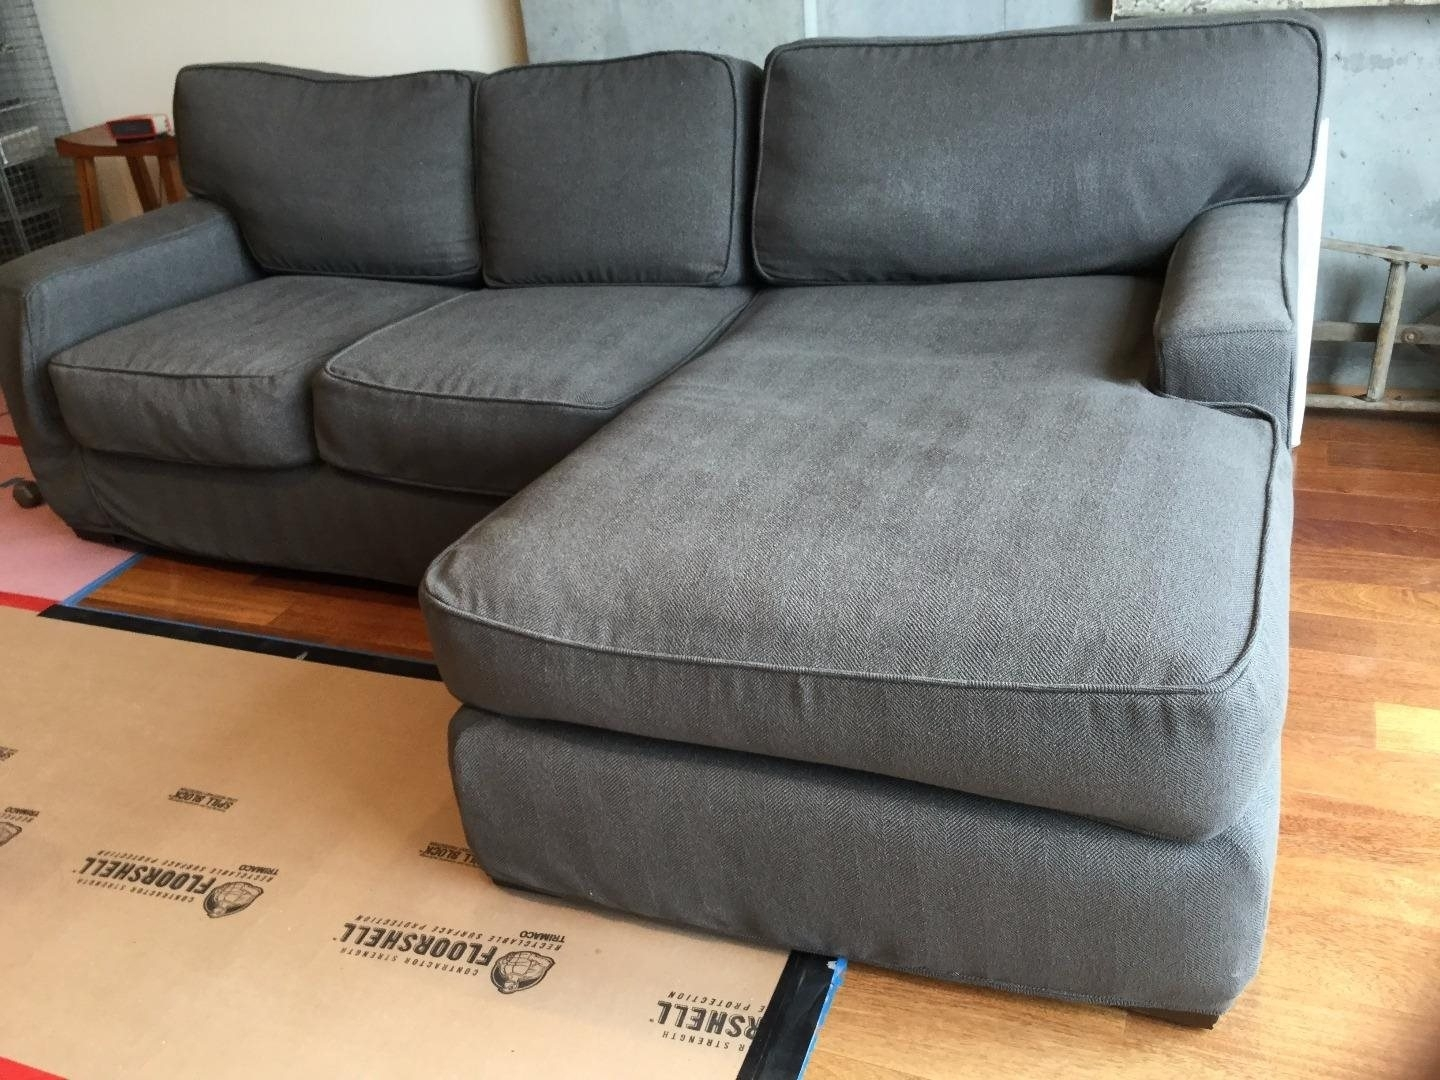 Quatrine Upholstered Sectional Sofa: For Sale In San Francisco, Ca For Quatrine Sectional Sofas (View 8 of 10)